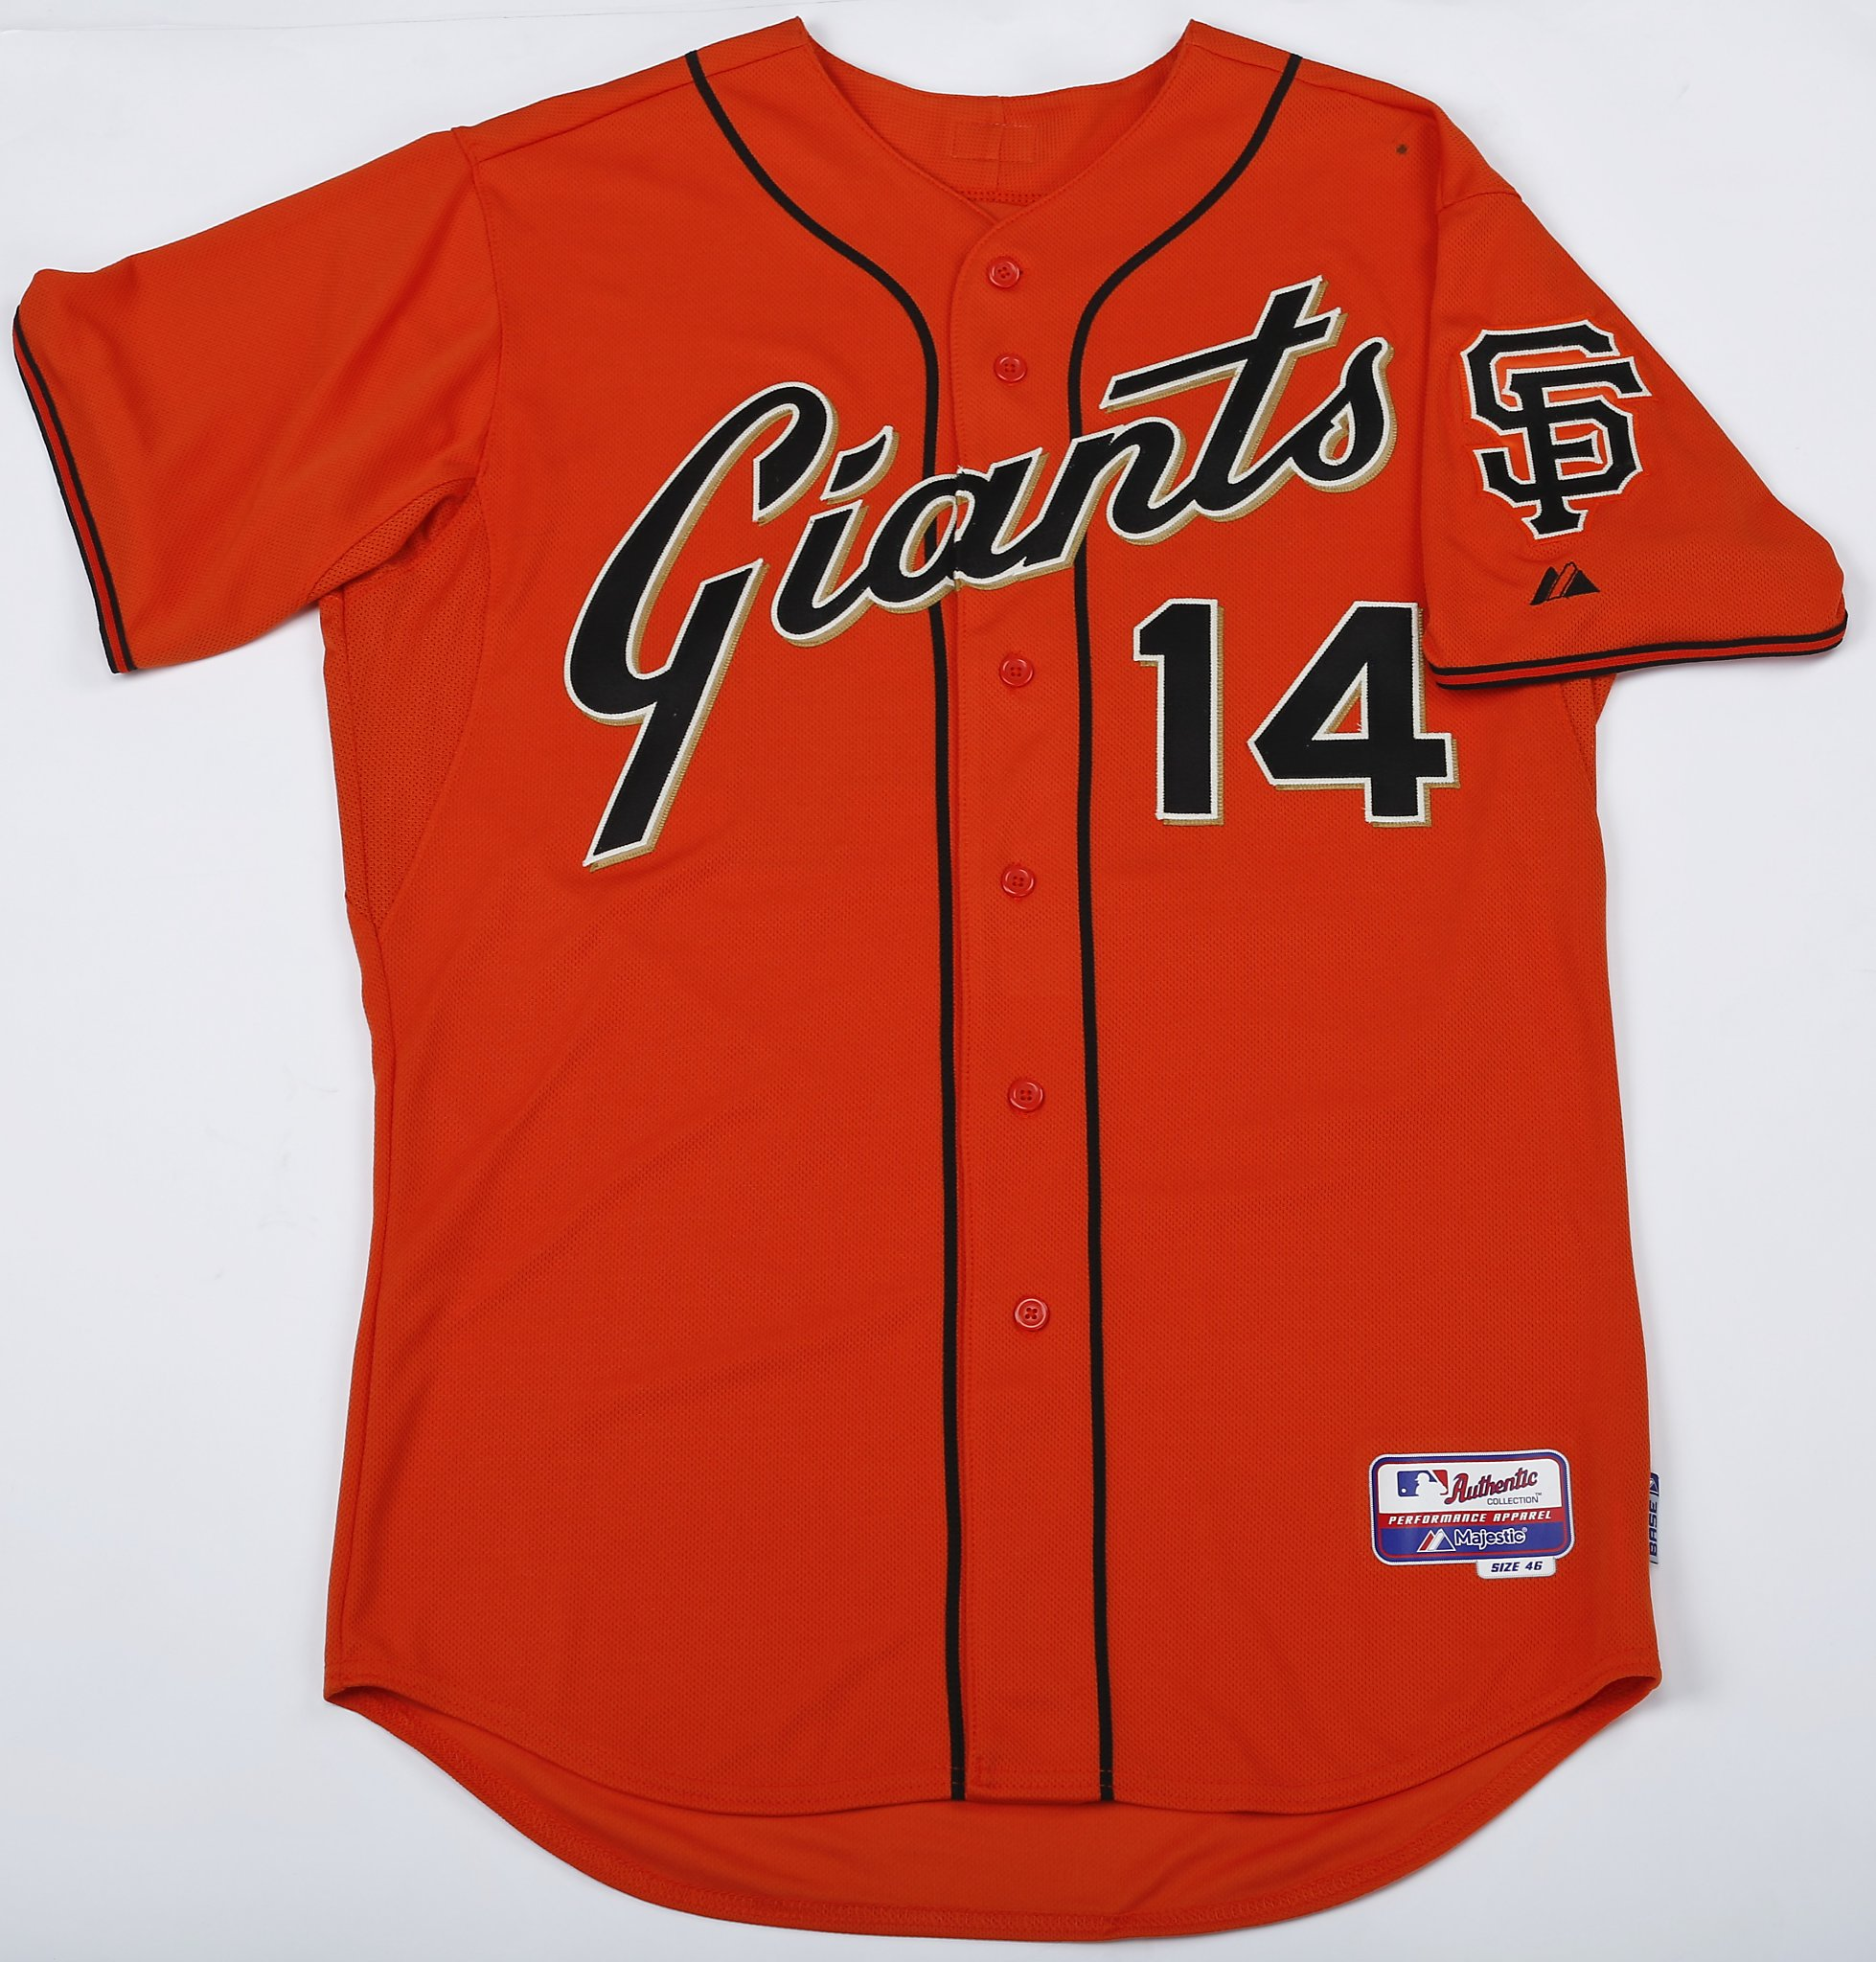 91fae2e79ab A by-the-shirt assist on what to wear Opening Day in S.F. - SFGate